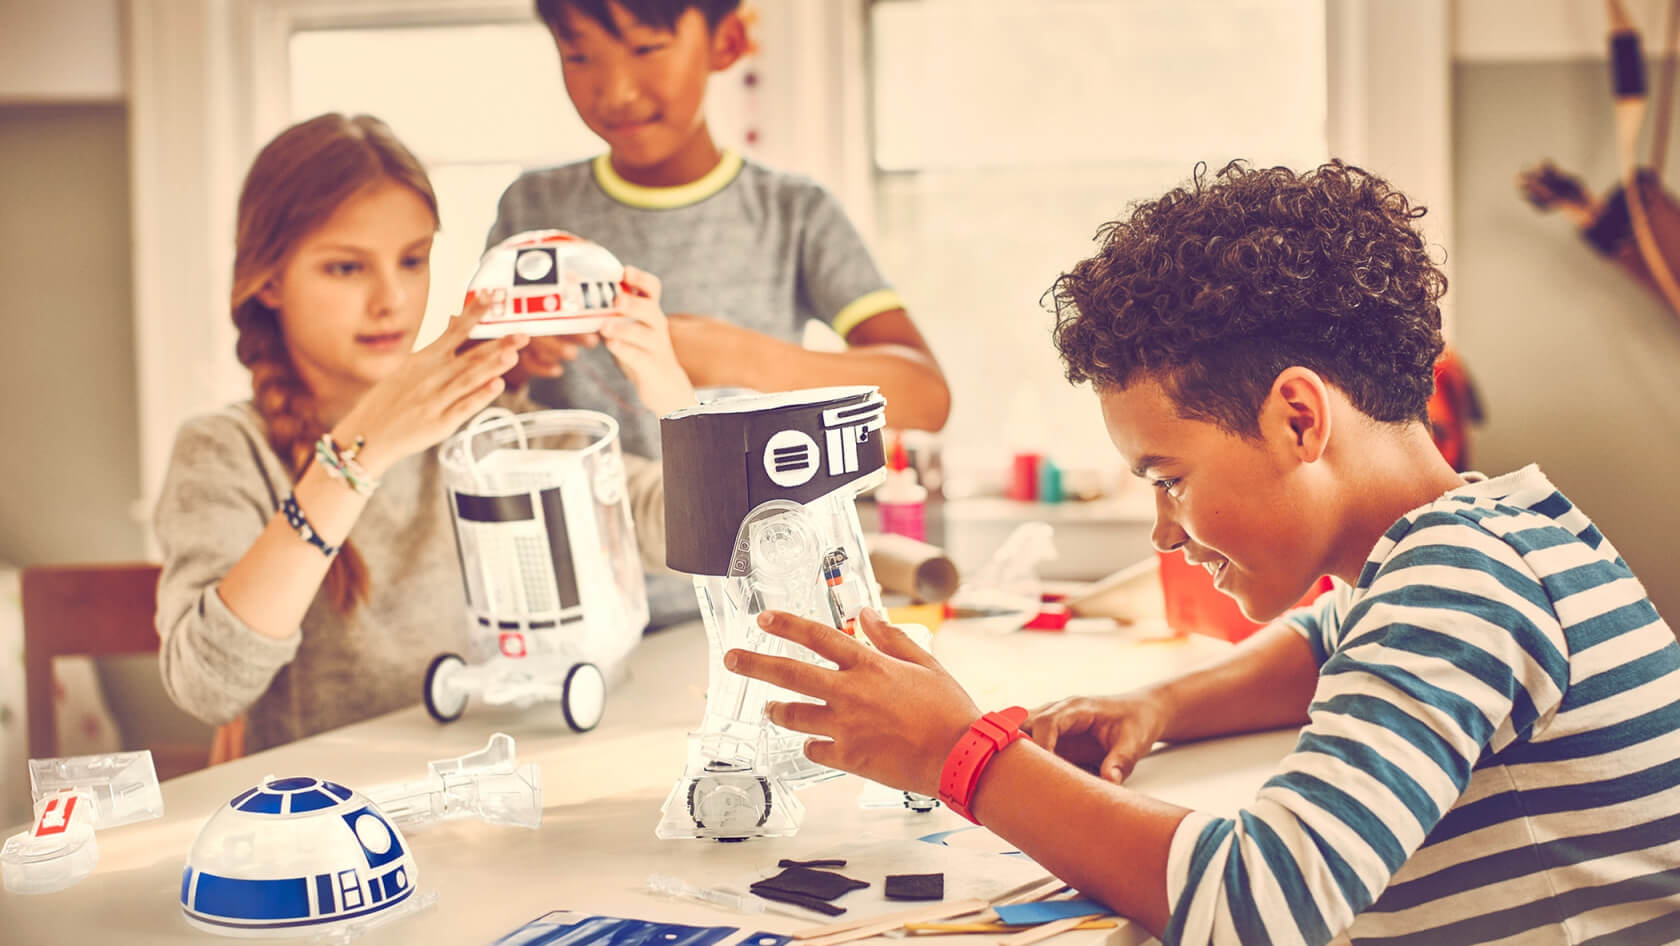 Kids can build a droid and learn about electronics with littleBits R2D2 kit